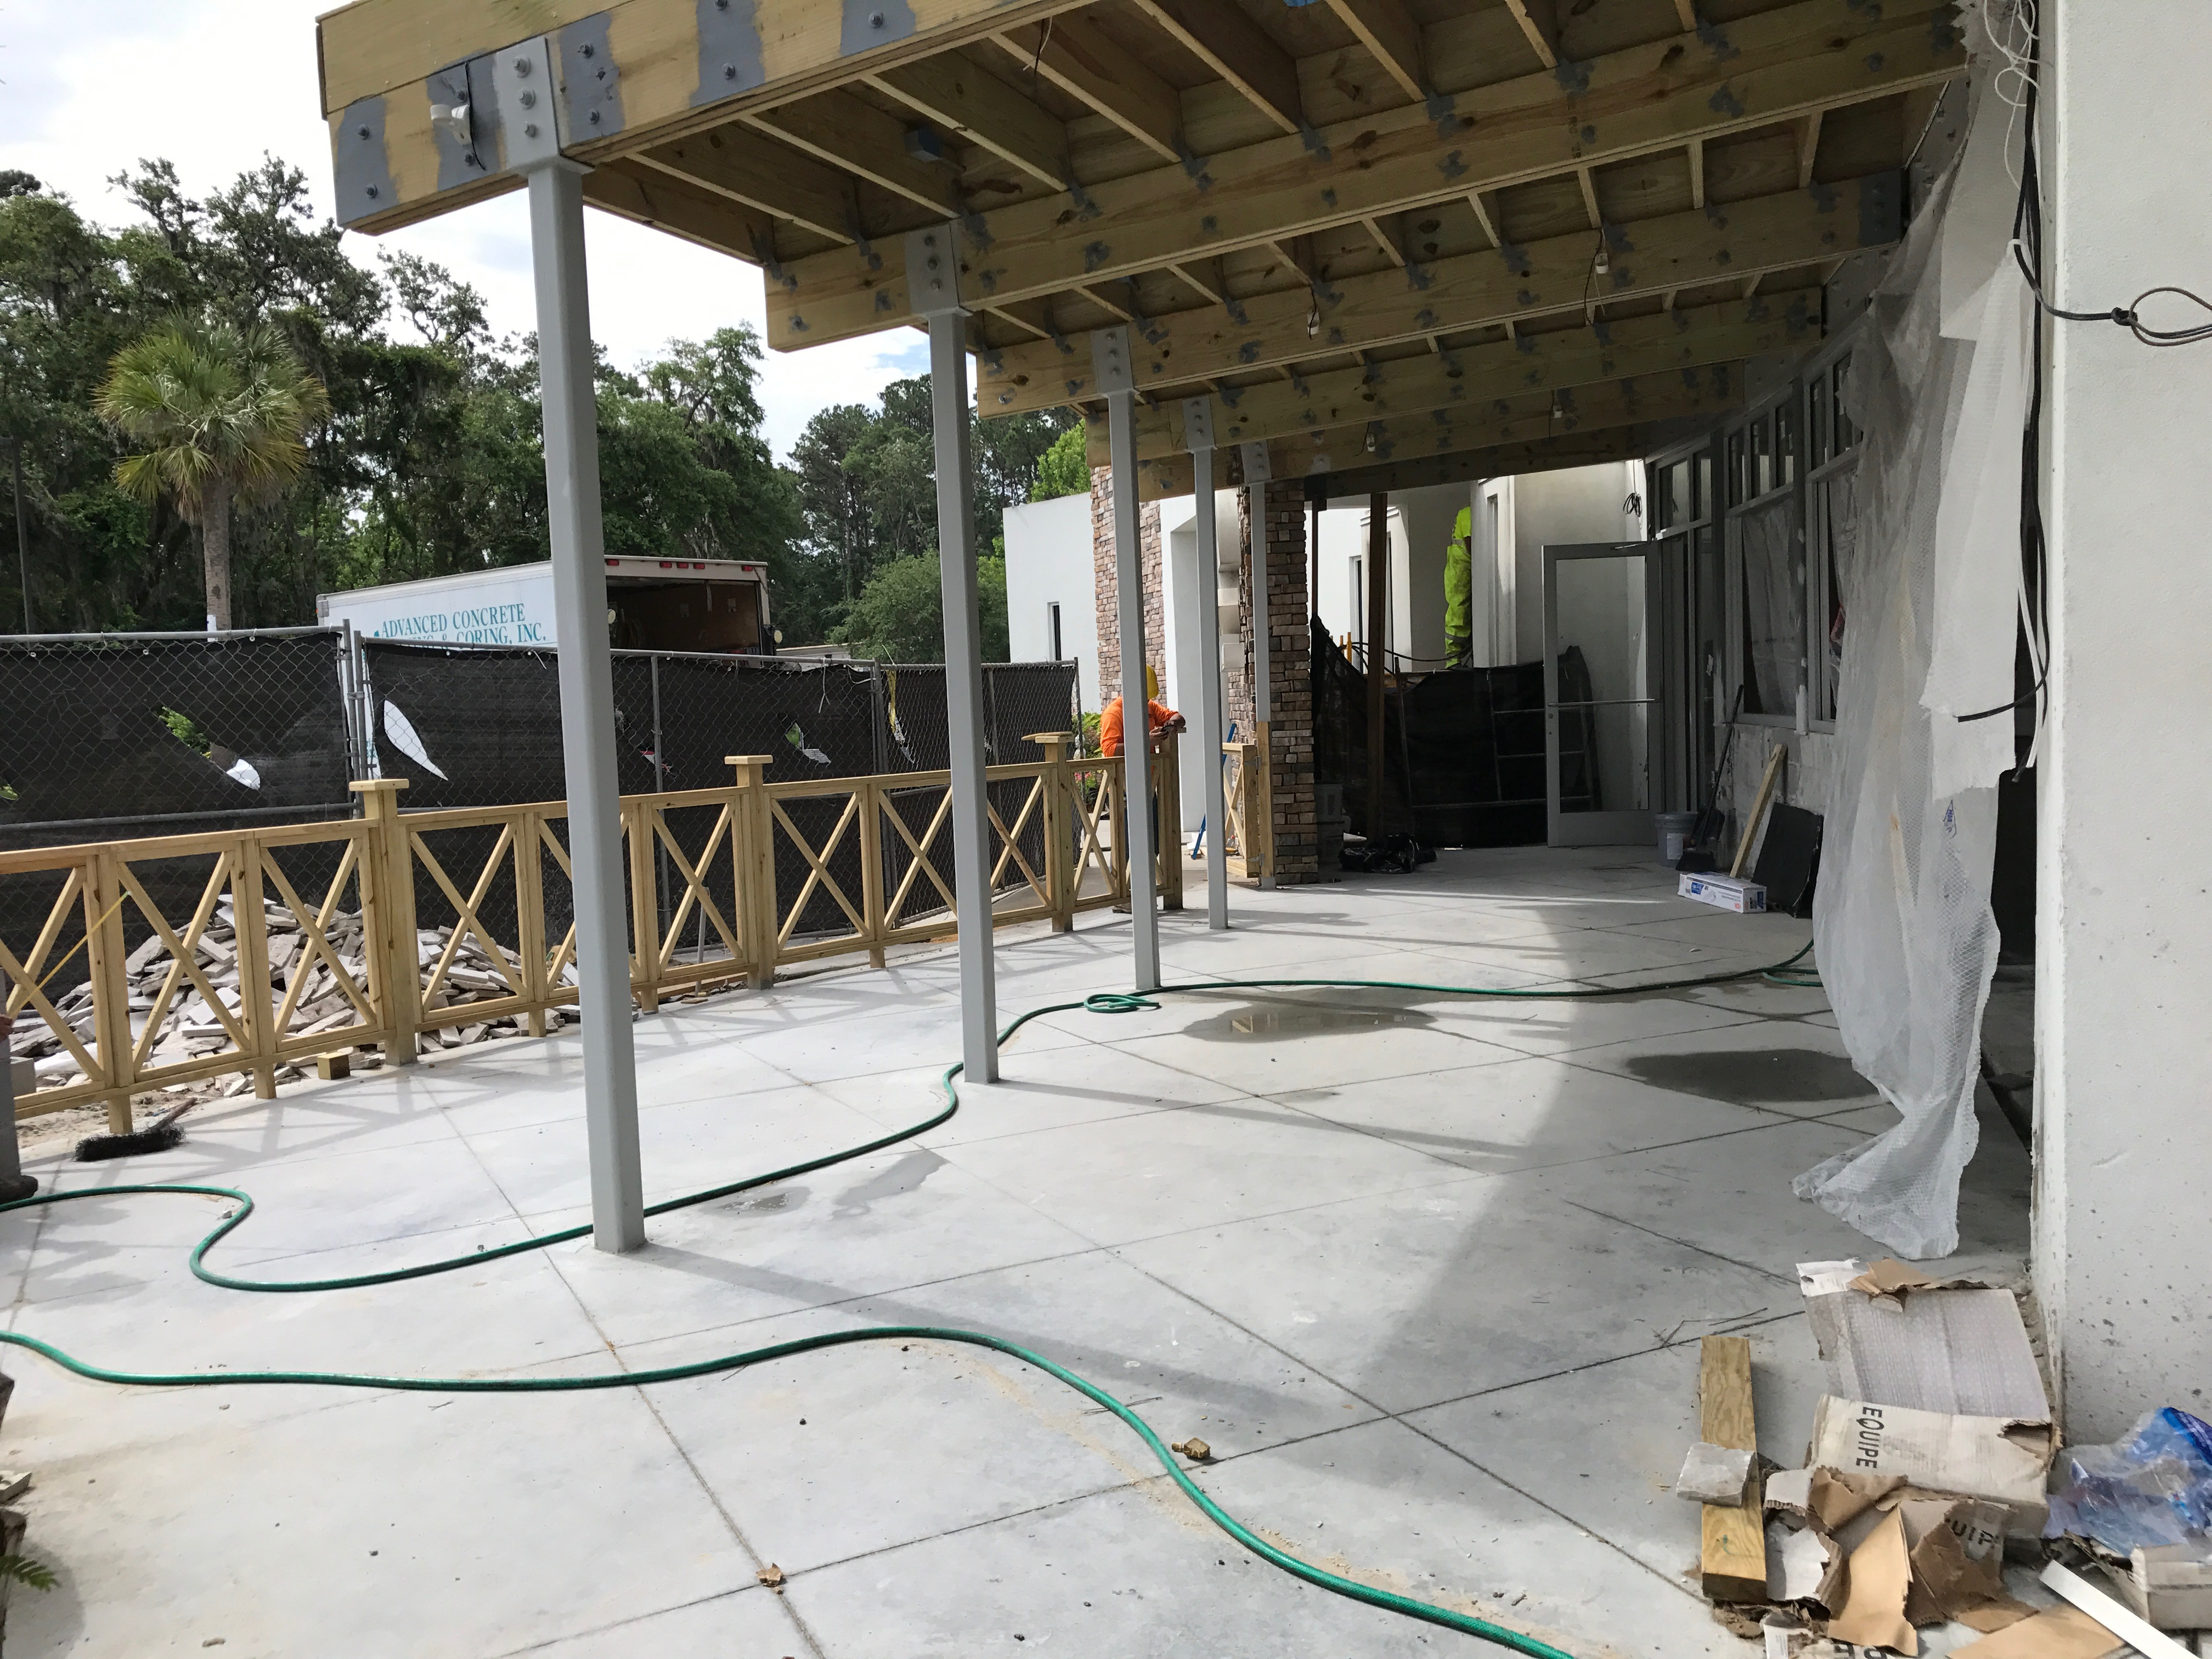 Current Kitchen and Cocktails will offer an indoor/outdoor bar area